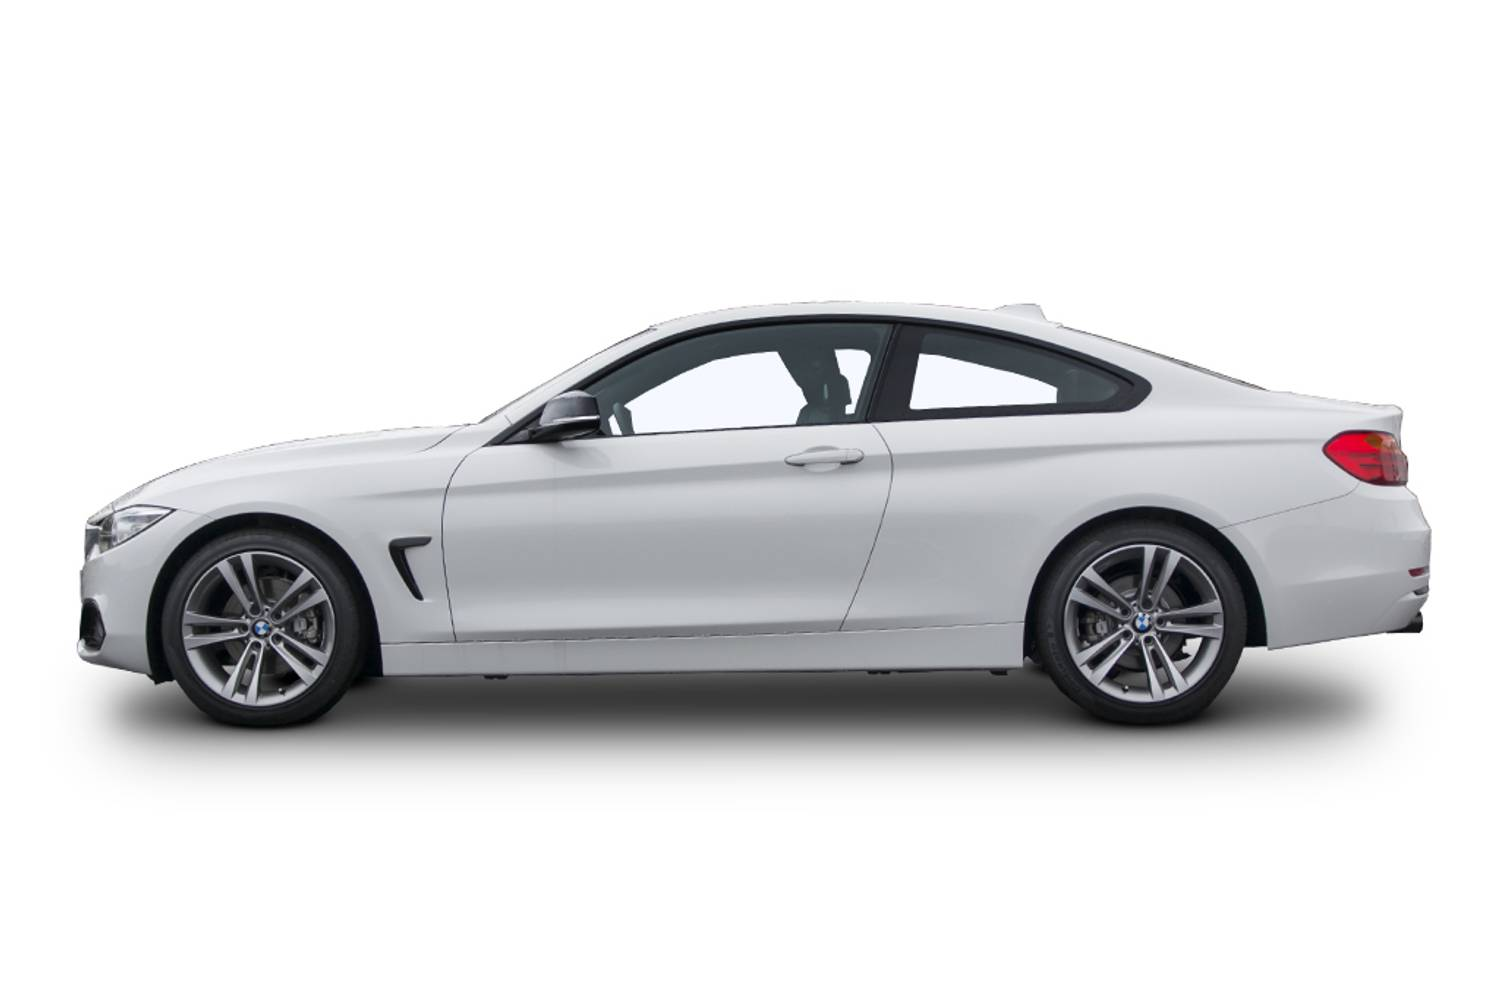 new bmw 4 series diesel coupe 430d xdrive m sport 2 door. Black Bedroom Furniture Sets. Home Design Ideas